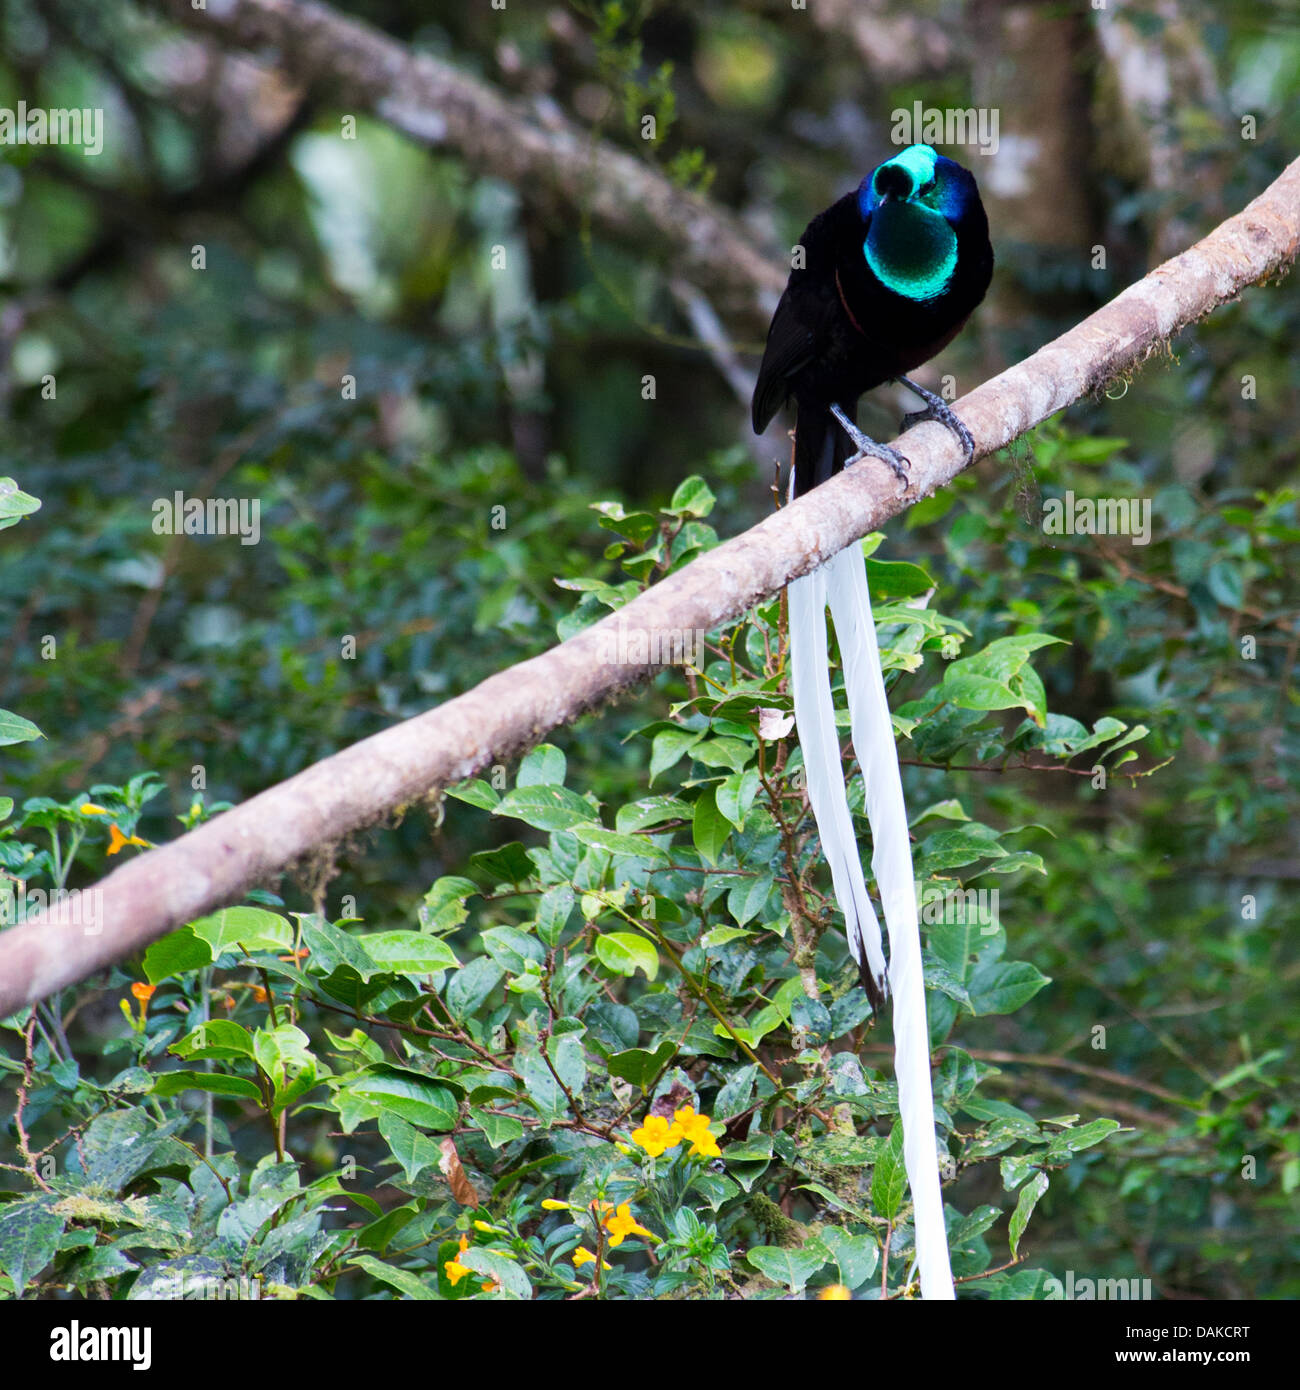 Adult male Ribbon-tailed Astrapia (Astrapia mayeri), a